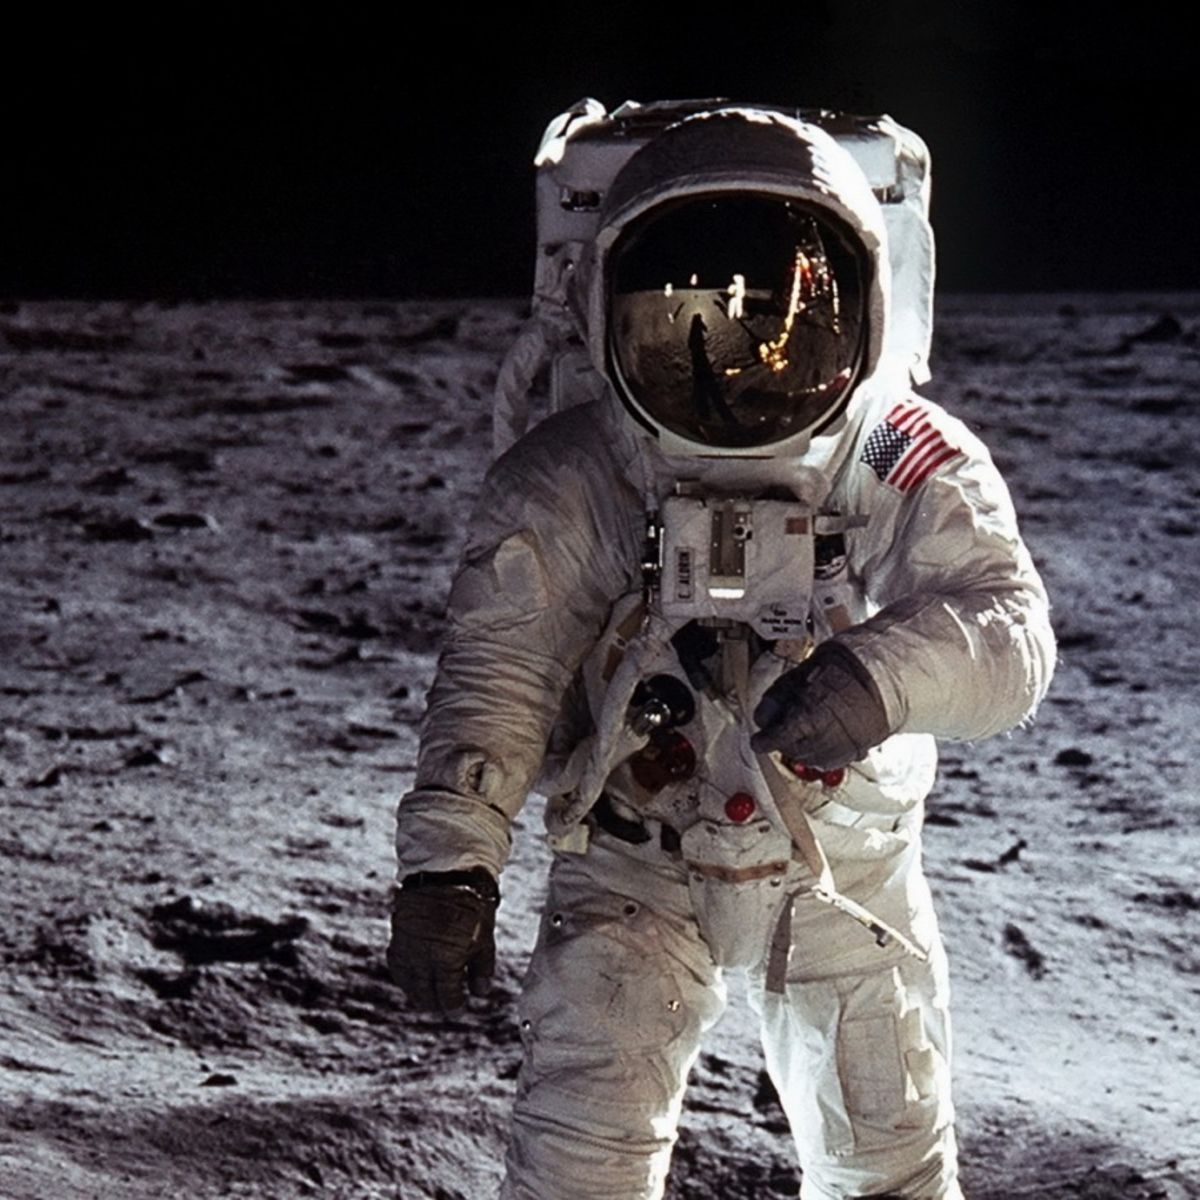 astronaut-outer-space-moon-nasa-astronauts-free-208100.jpg